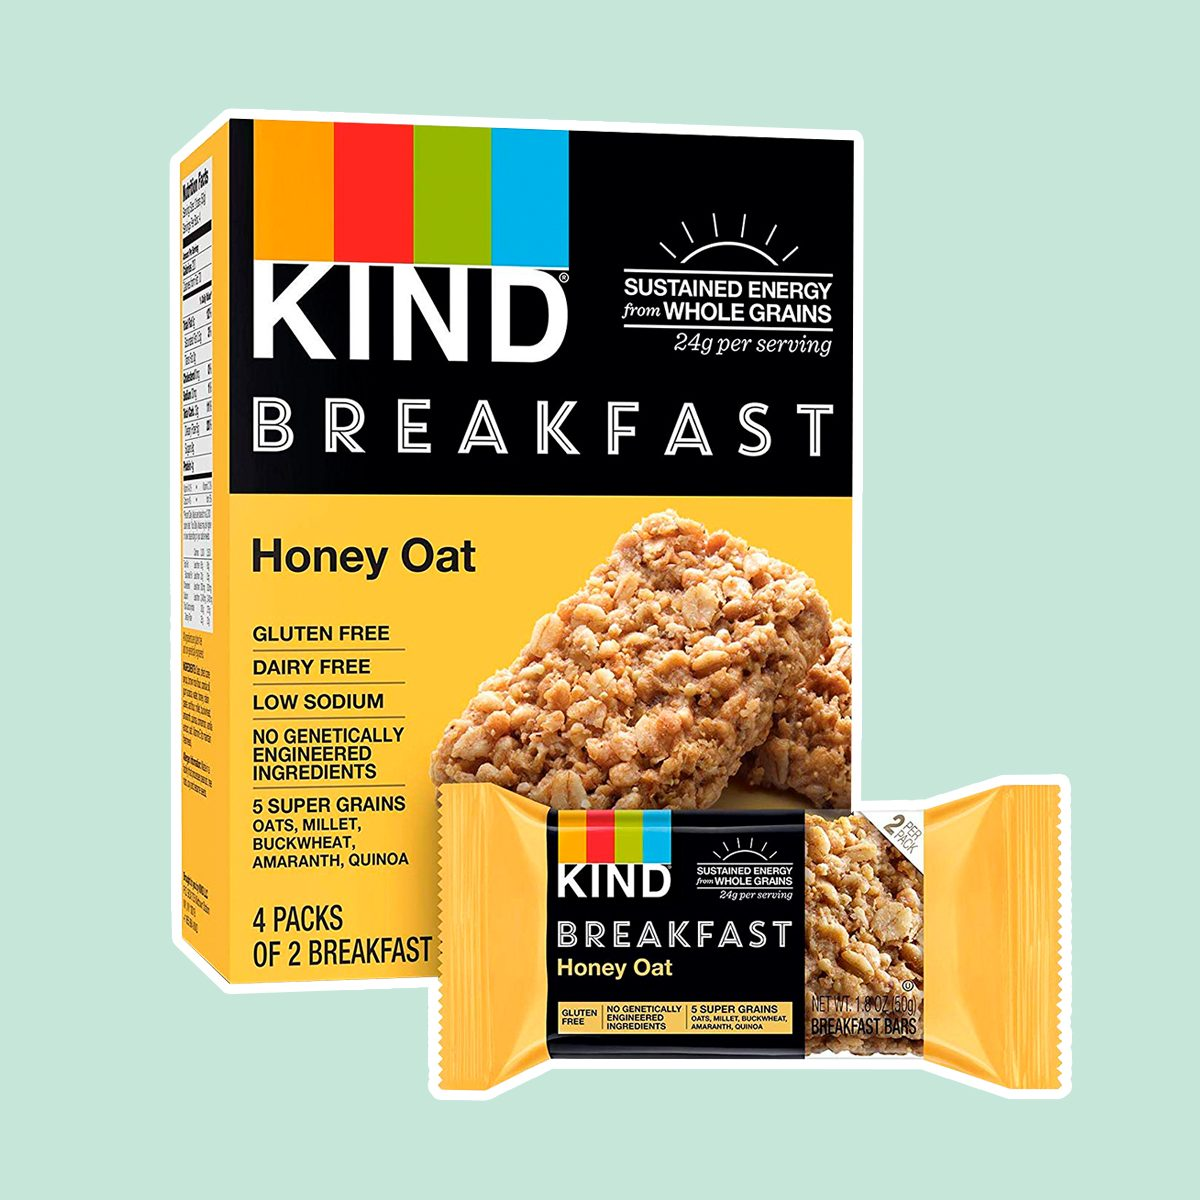 KIND Breakfast Bars, Honey Oat, Gluten Free, 1.8 Ounce, 32 Count